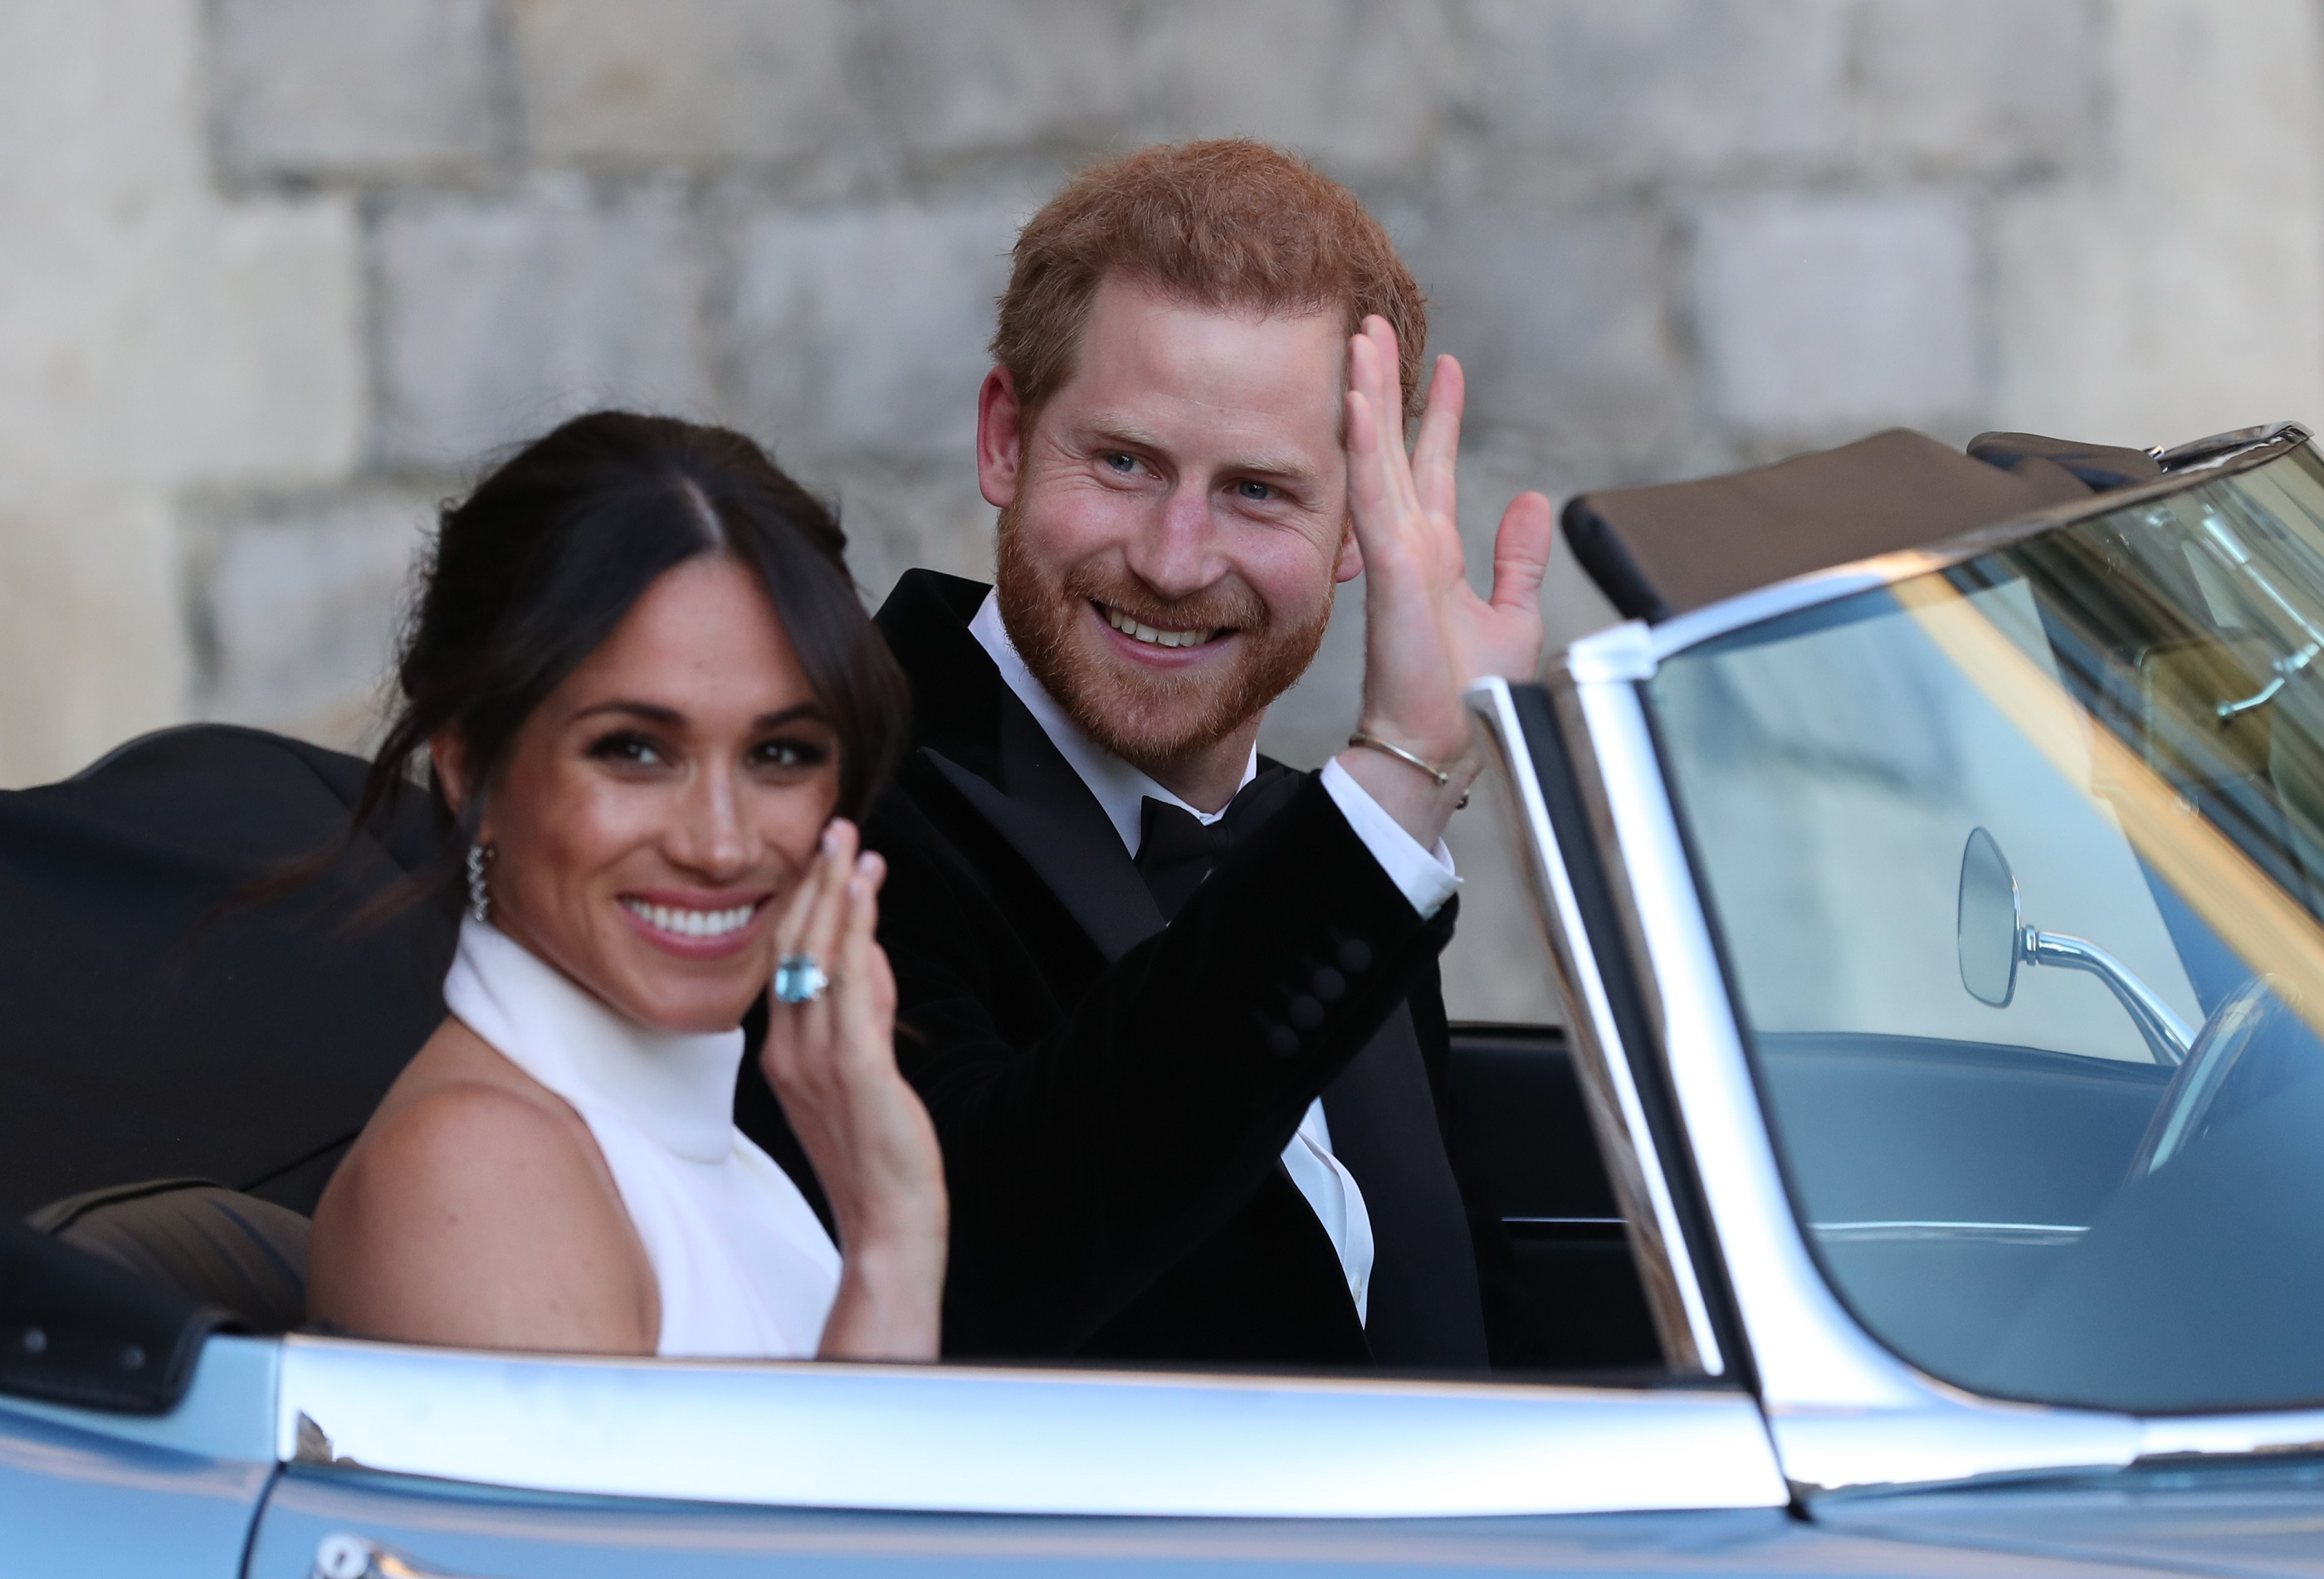 what it means for prince harry and meghan markle to be financially independent marketplace https www marketplace org 2020 01 09 what it means for prince harry and meghan markle to be financially independent